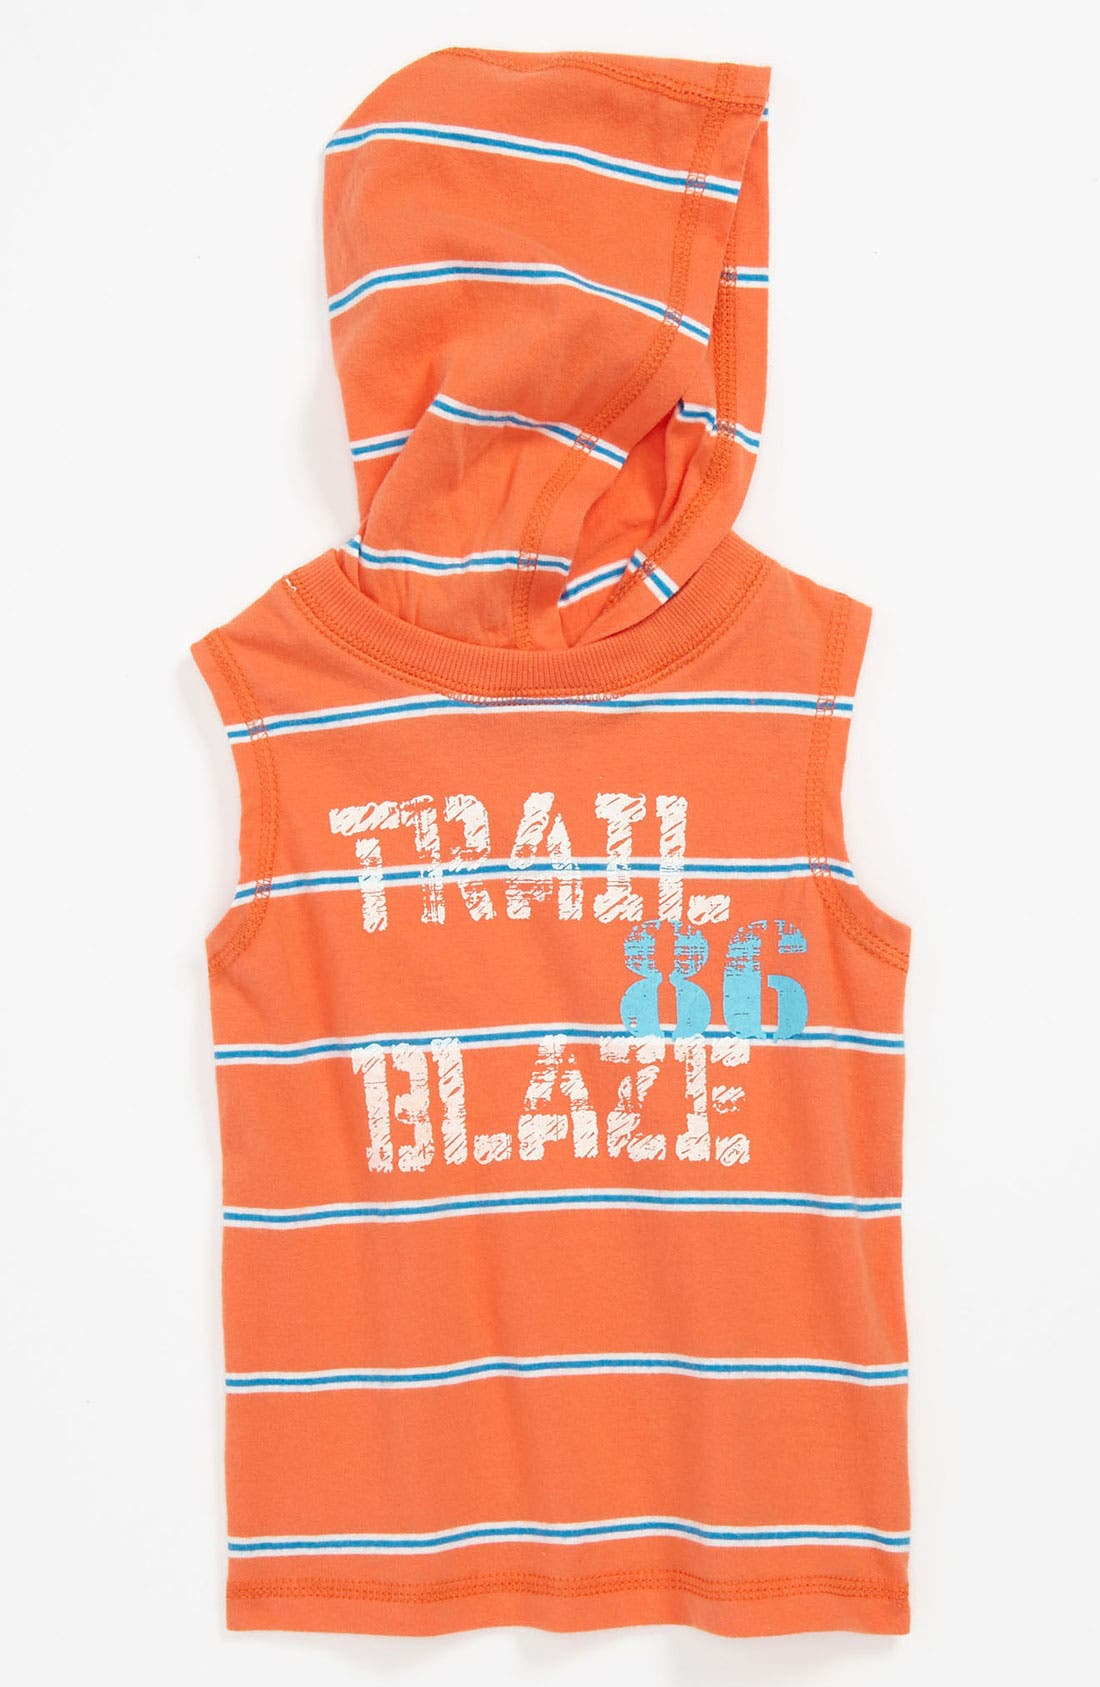 Alternate Image 1 Selected - Pumpkin Patch Hooded Top (Toddler)